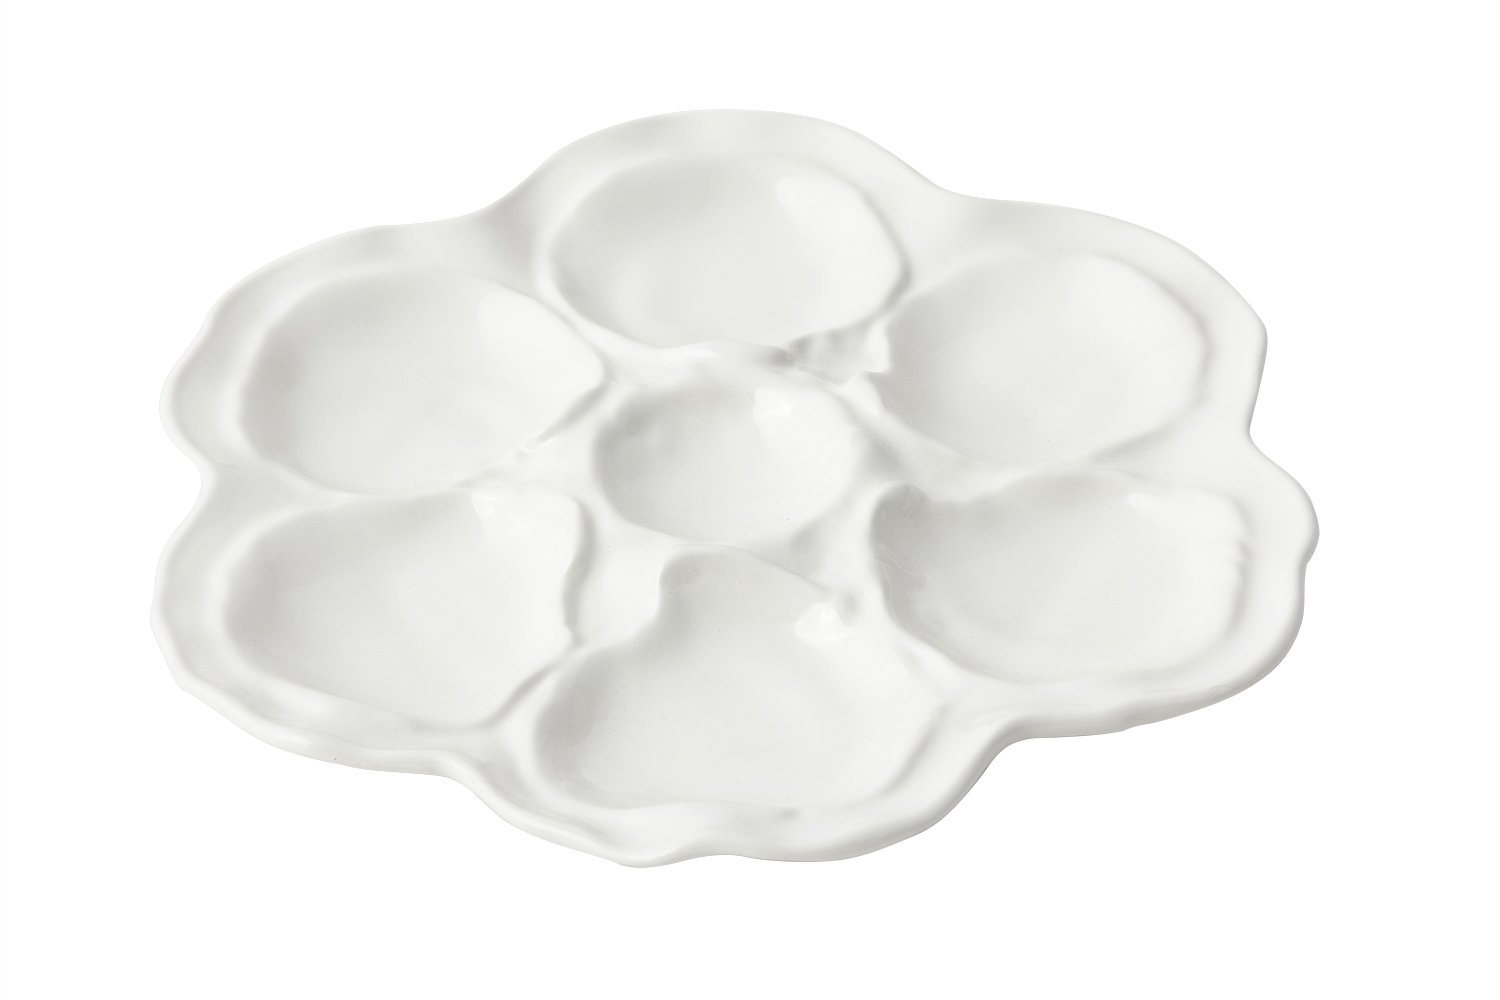 Bon Chef 5079BLK Aluminum 6-Hole Oyster Plate, 10